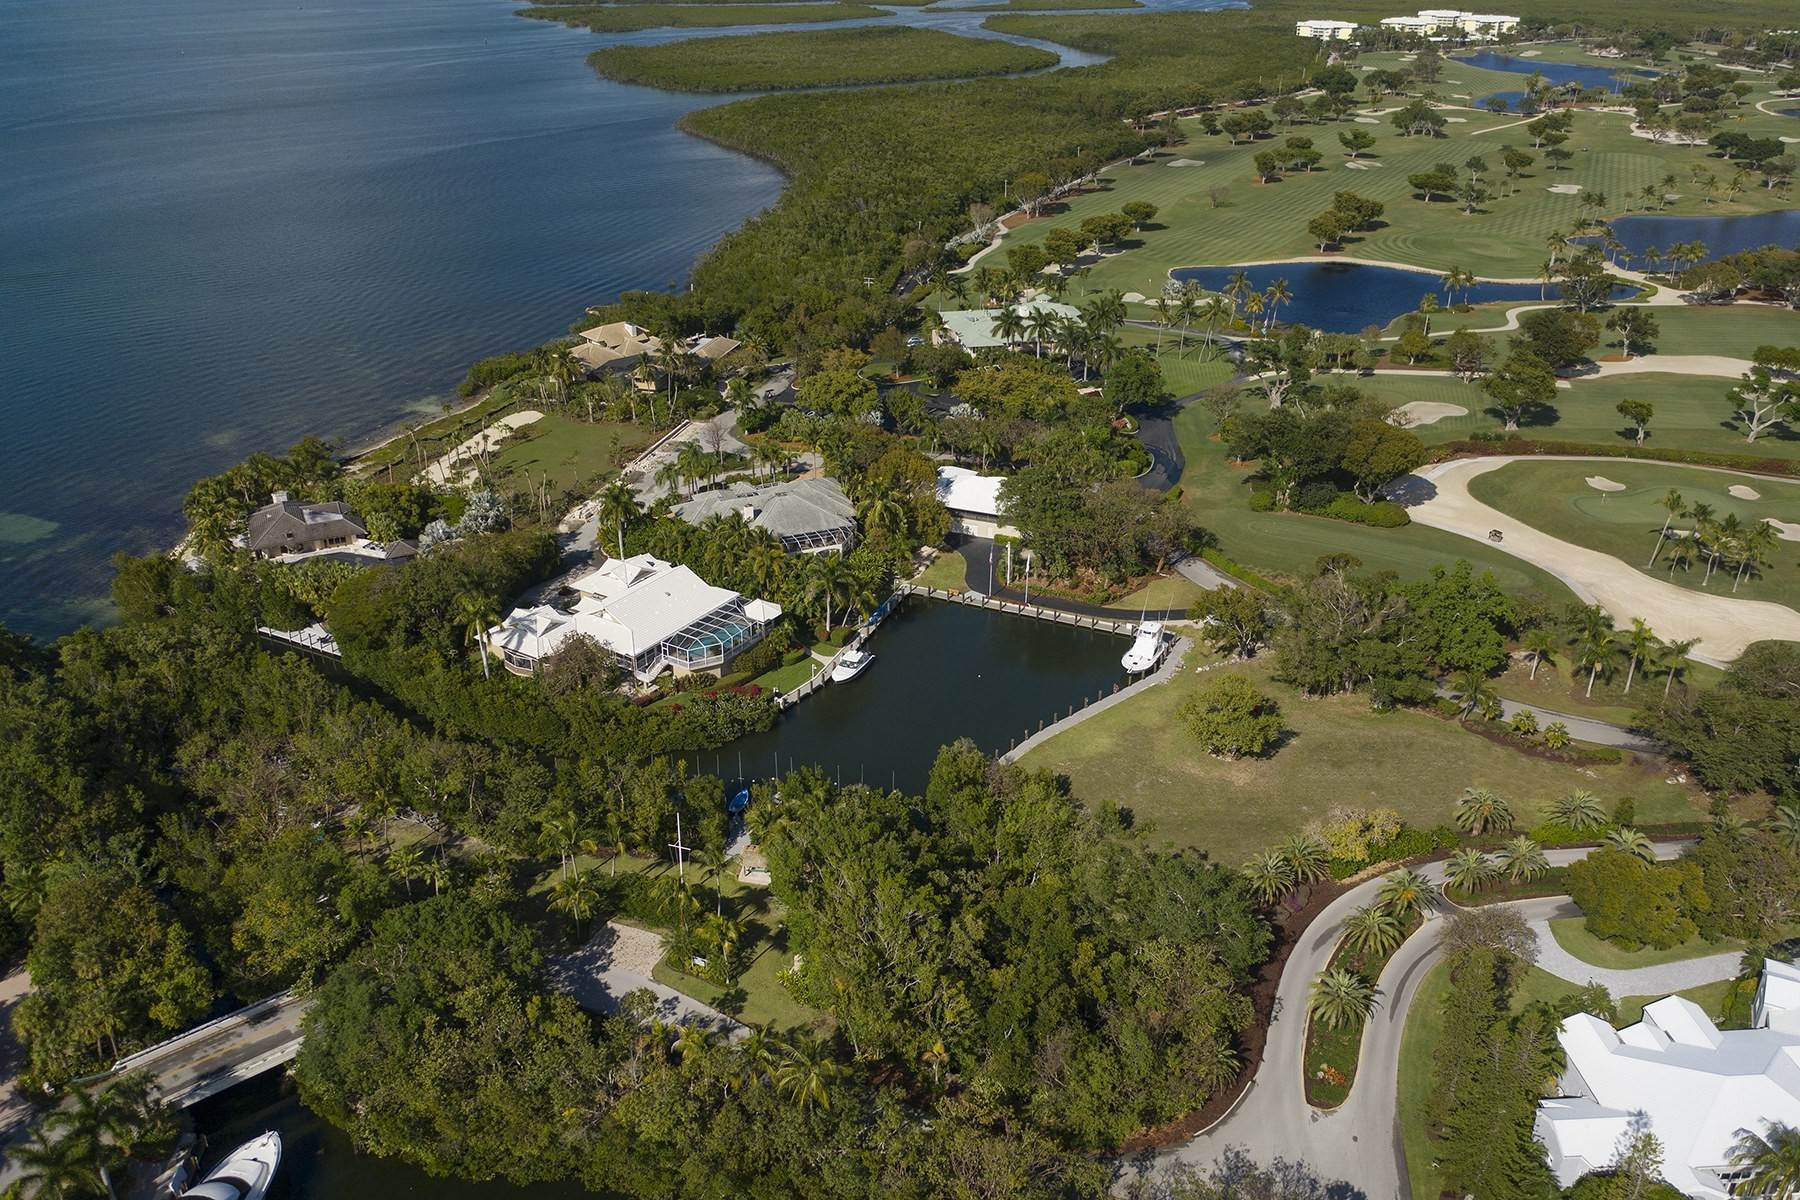 9. Property for Sale at 10 Cannon Point, Key Largo, FL Key Largo, Florida 33037 United States